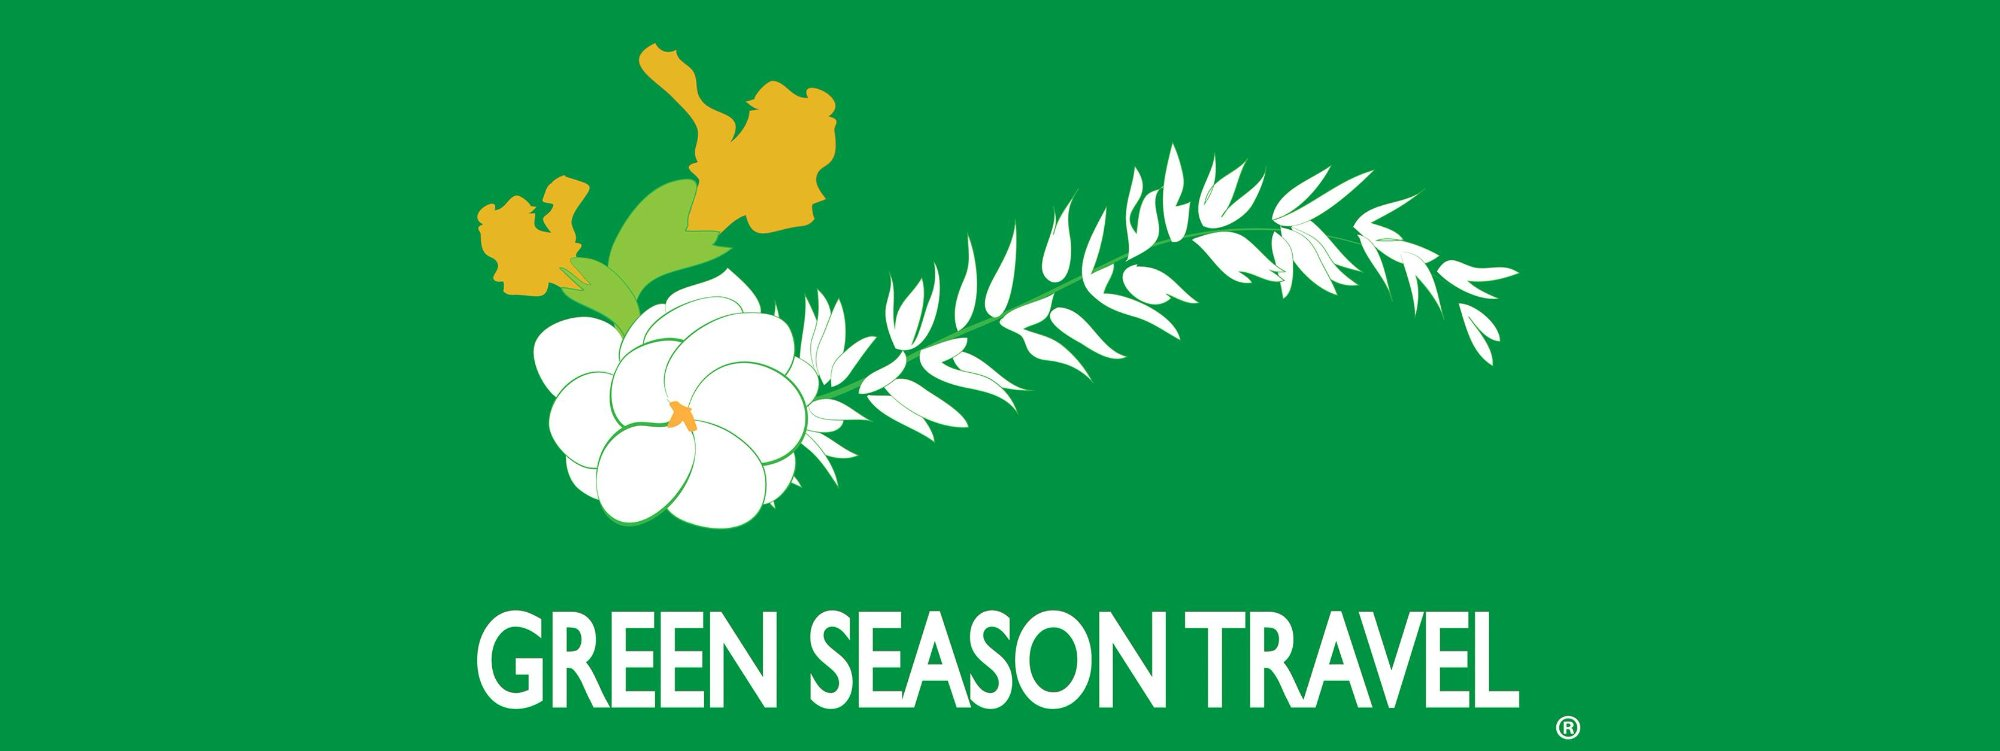 Green Season Travel